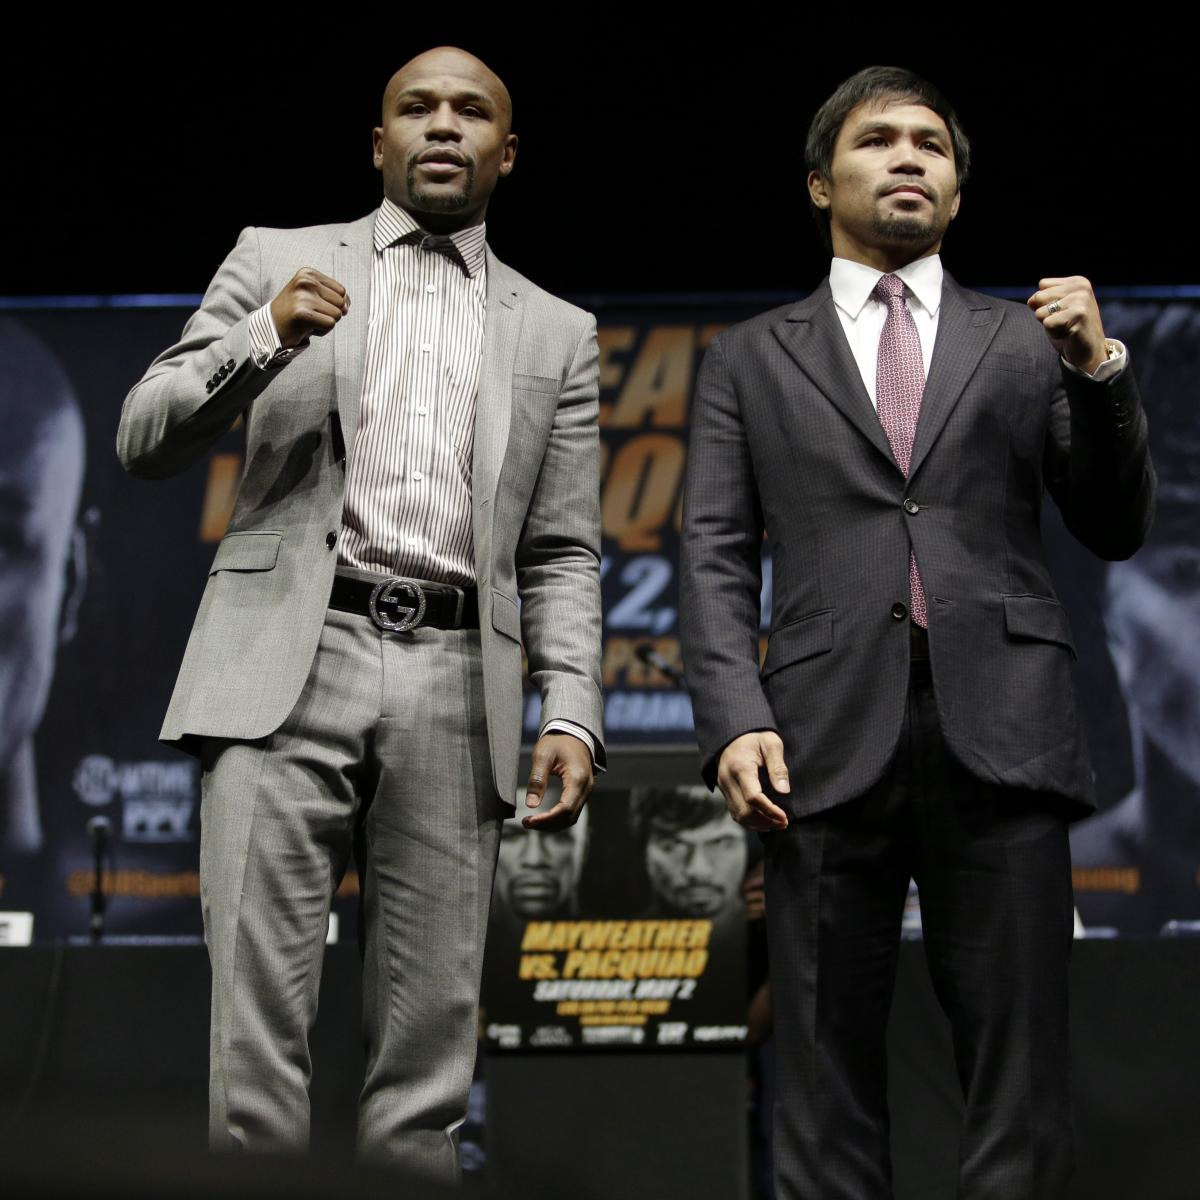 Mayweather Vs. Pacquiao: Showtime To Air 4-Part Fight